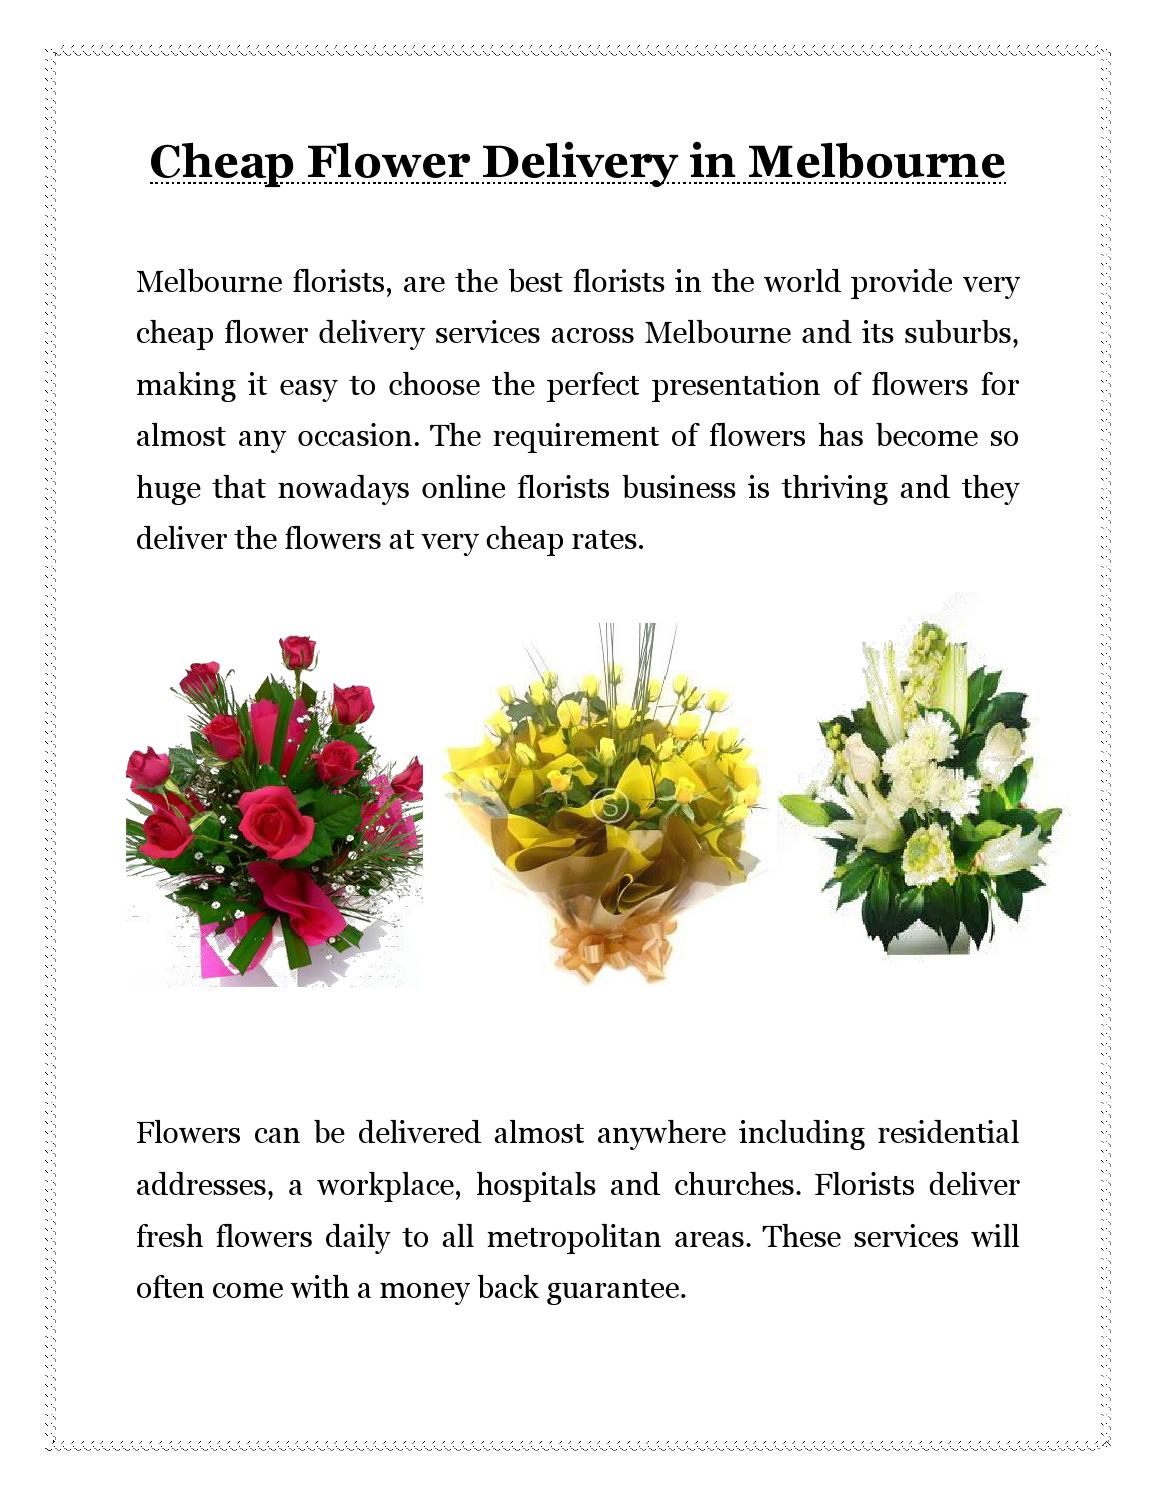 Cheap flower delivery in melbourne by thanks a bunch florist issuu izmirmasajfo